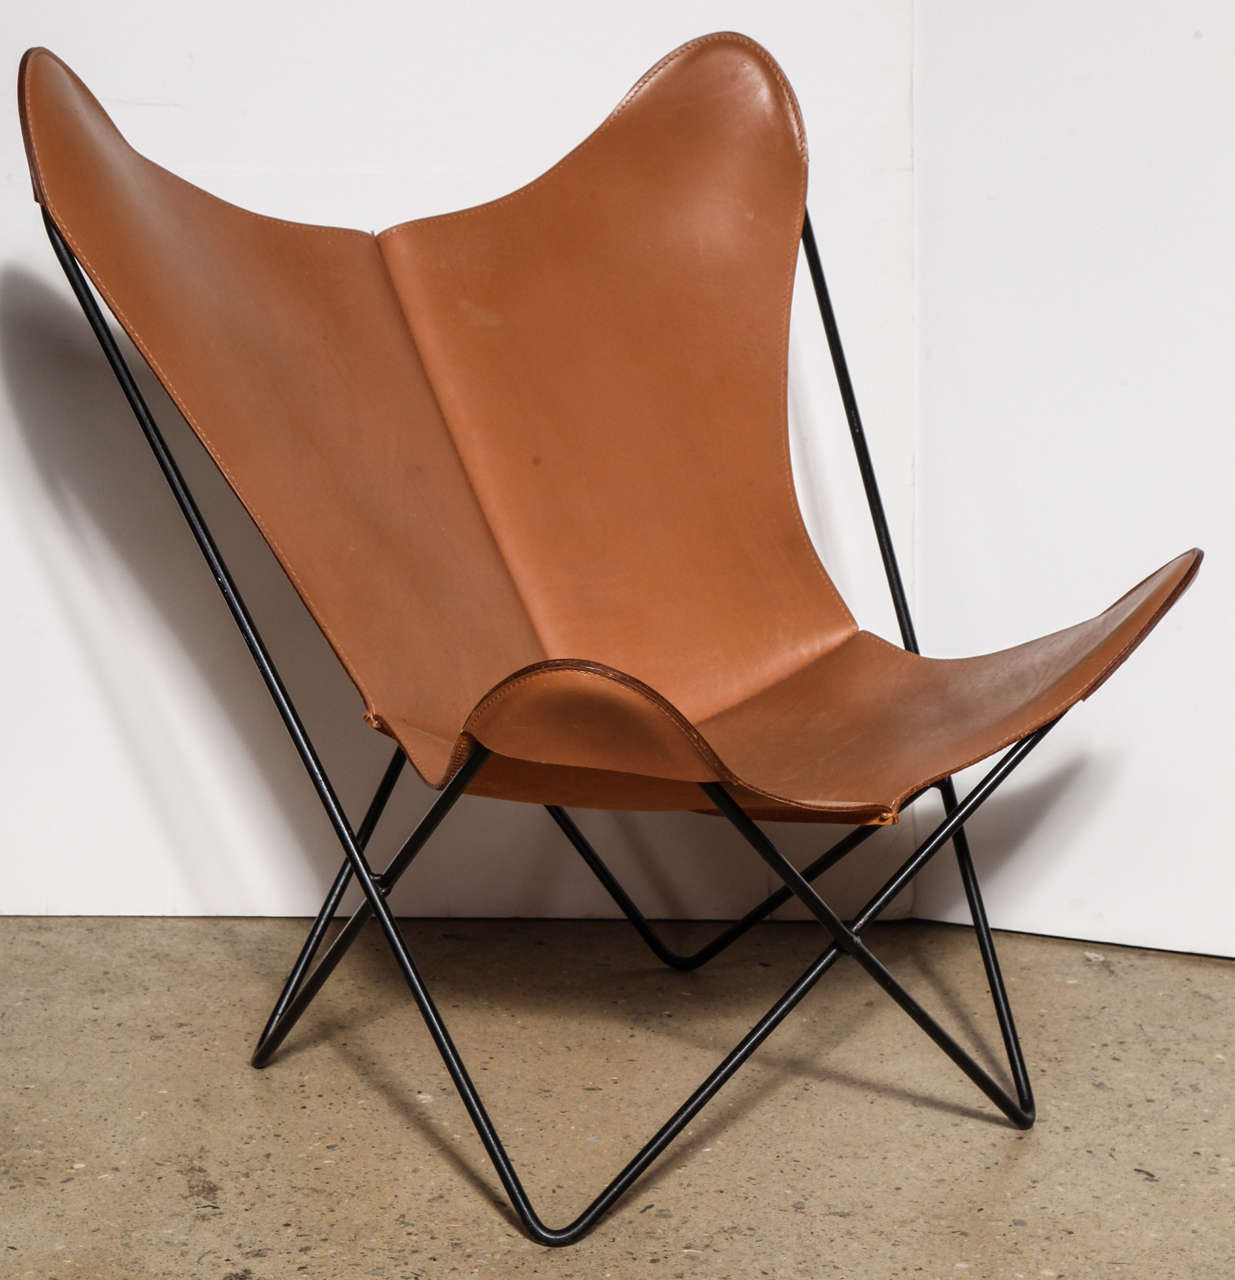 butterfly lounge chair that unfolds into a bed single knoll style hardoy at 1stdibs